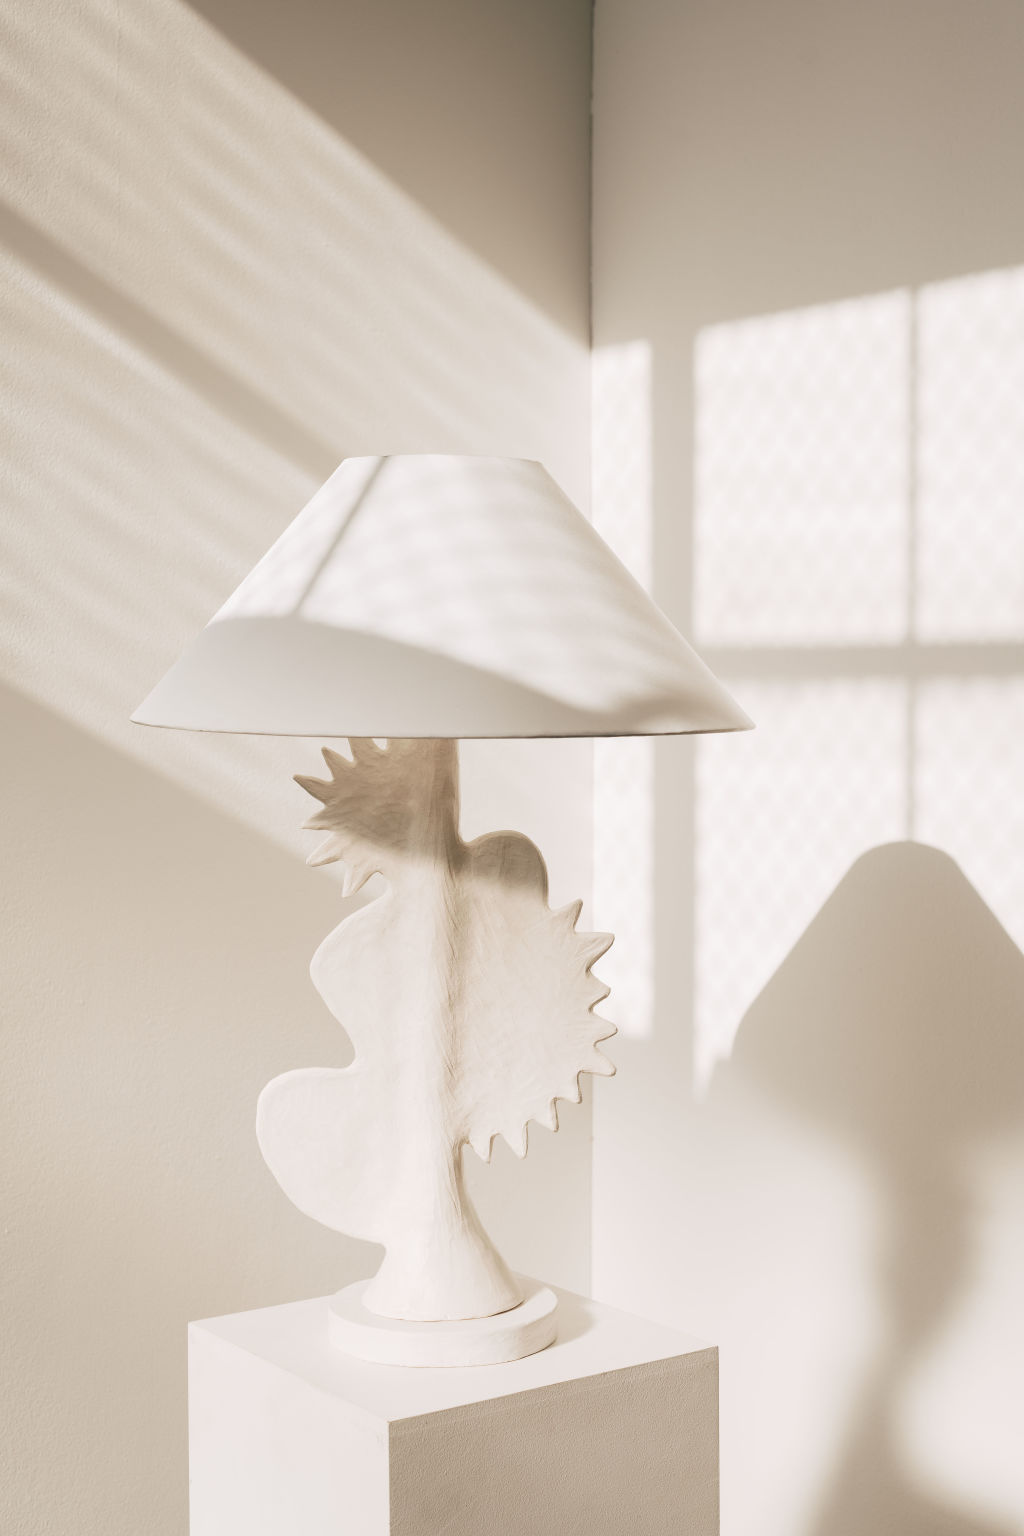 Ceramic Lamps by Sarah Nedovic NOT FOR REUSE